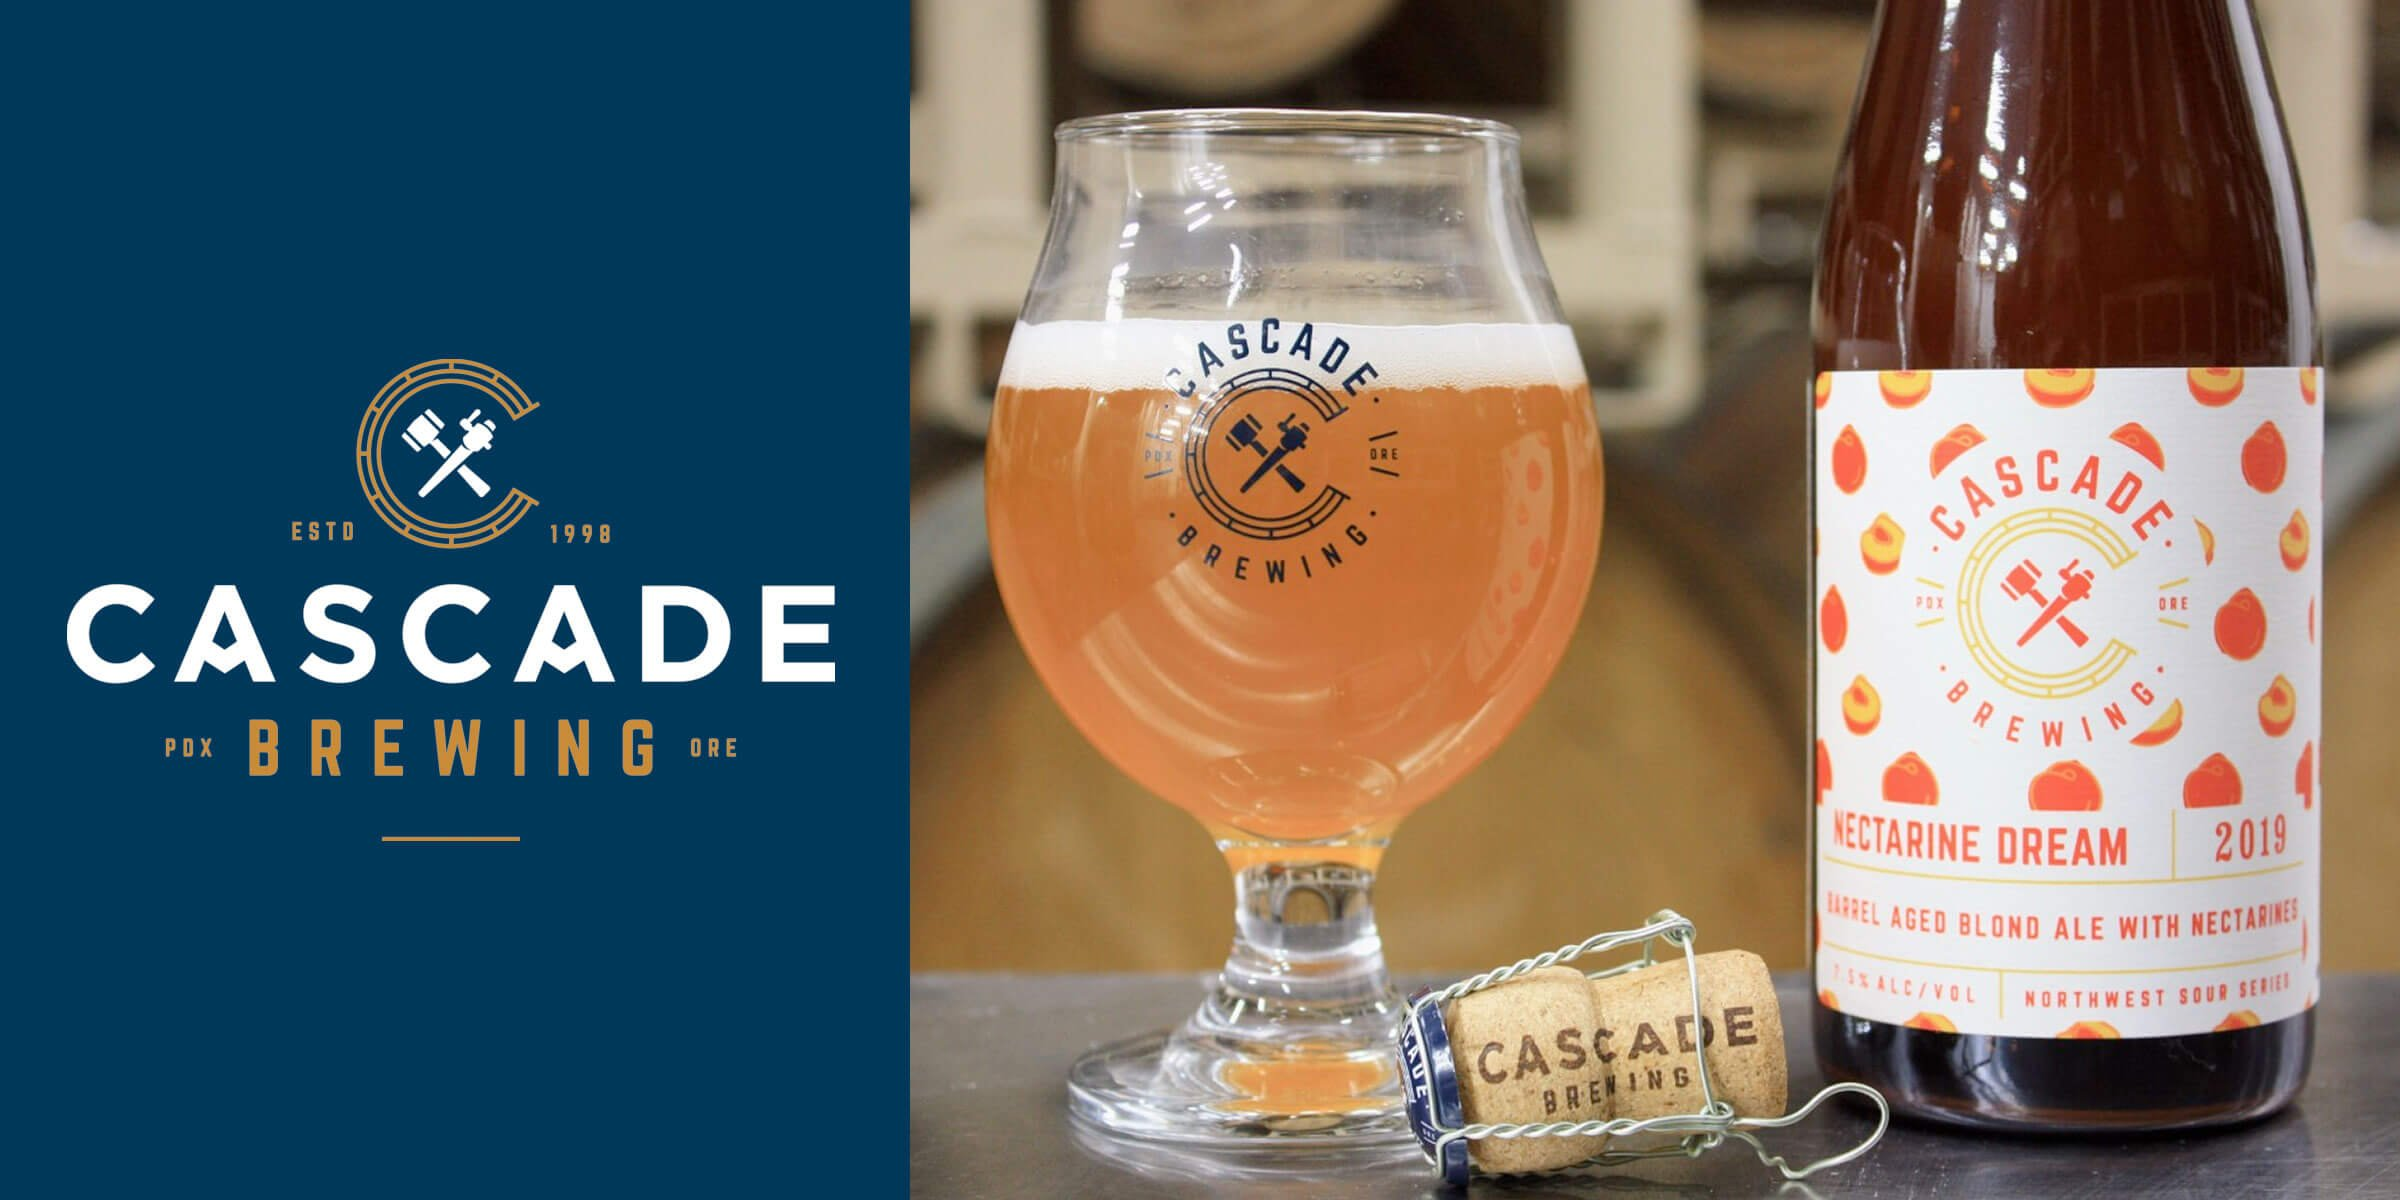 Cascade Brewing announced the upcoming releases for the sour blond ales Nectarine Dream 2019 in 500 ml bottles and the Native Bramble 2019 on draft only.